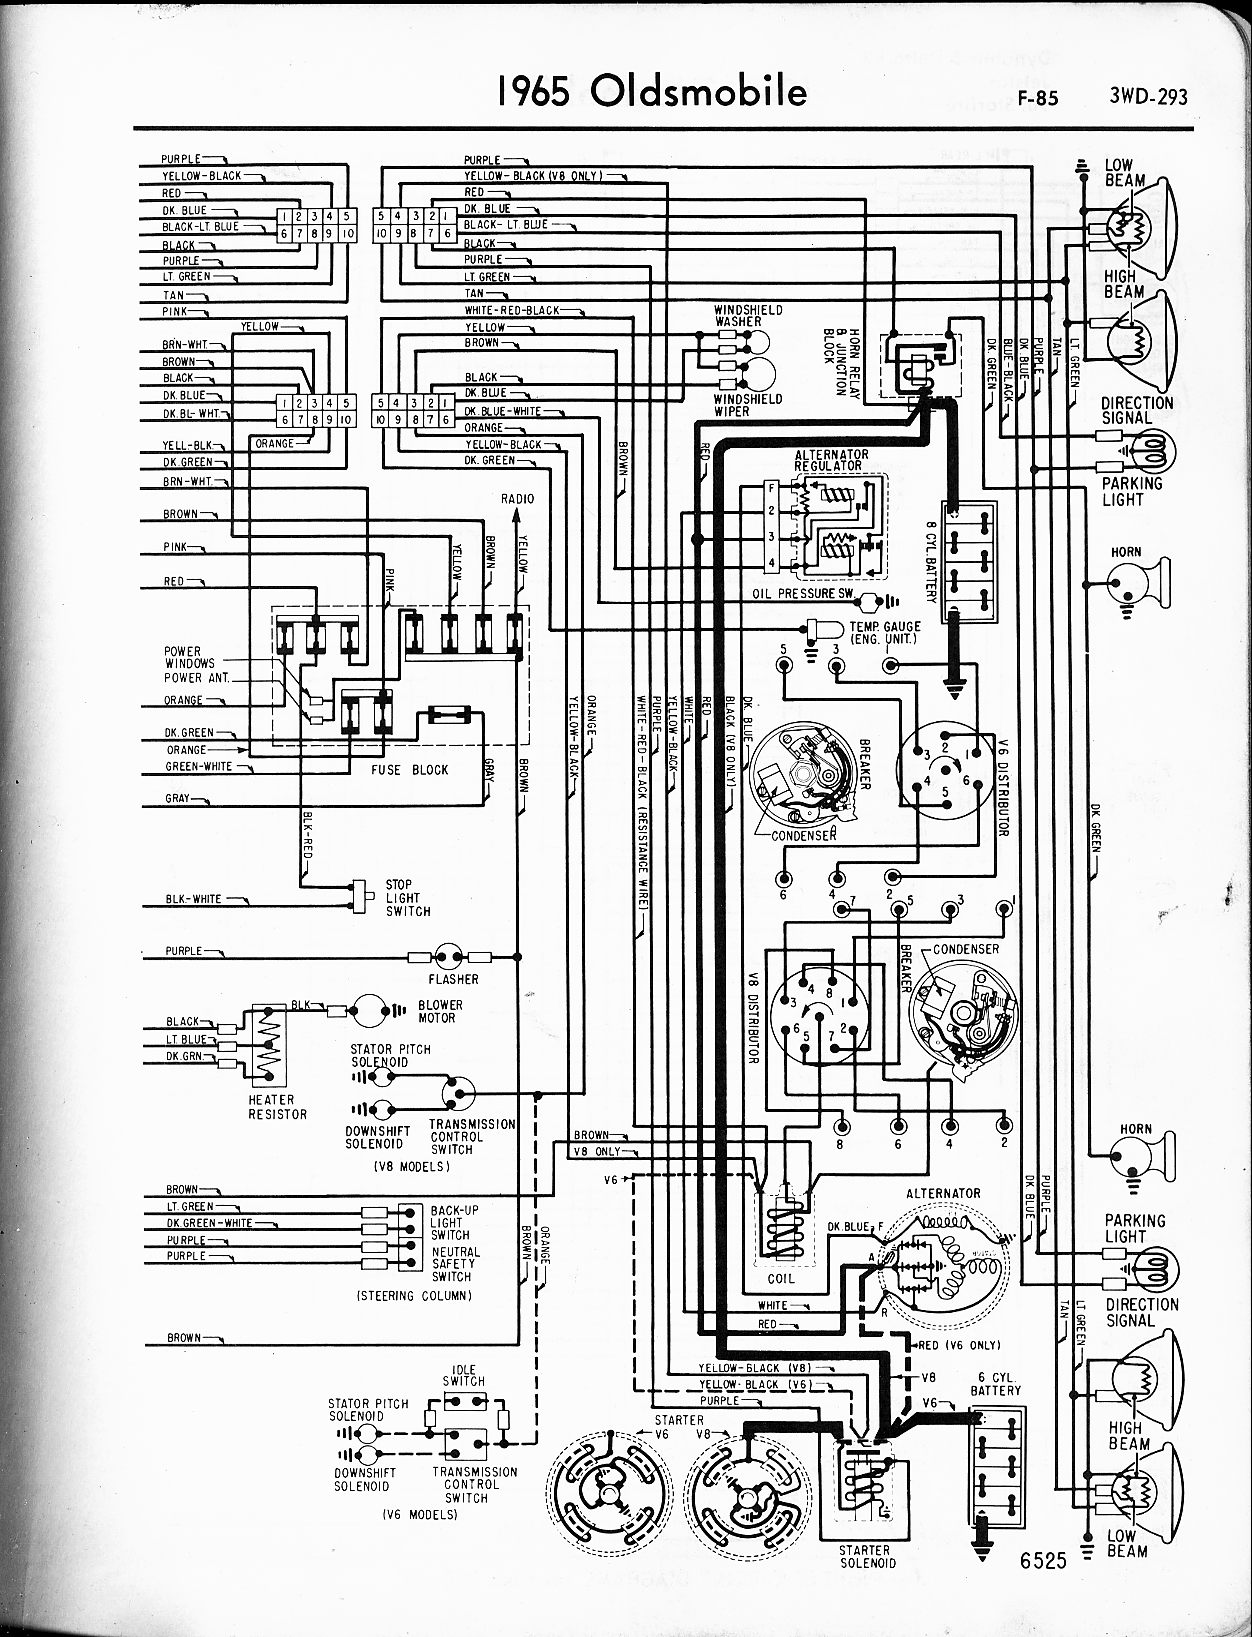 1966 olds 98 generator wiring diagram schematic ideas wrg 1835] 1953 oldsmobile 98 wiring diagram